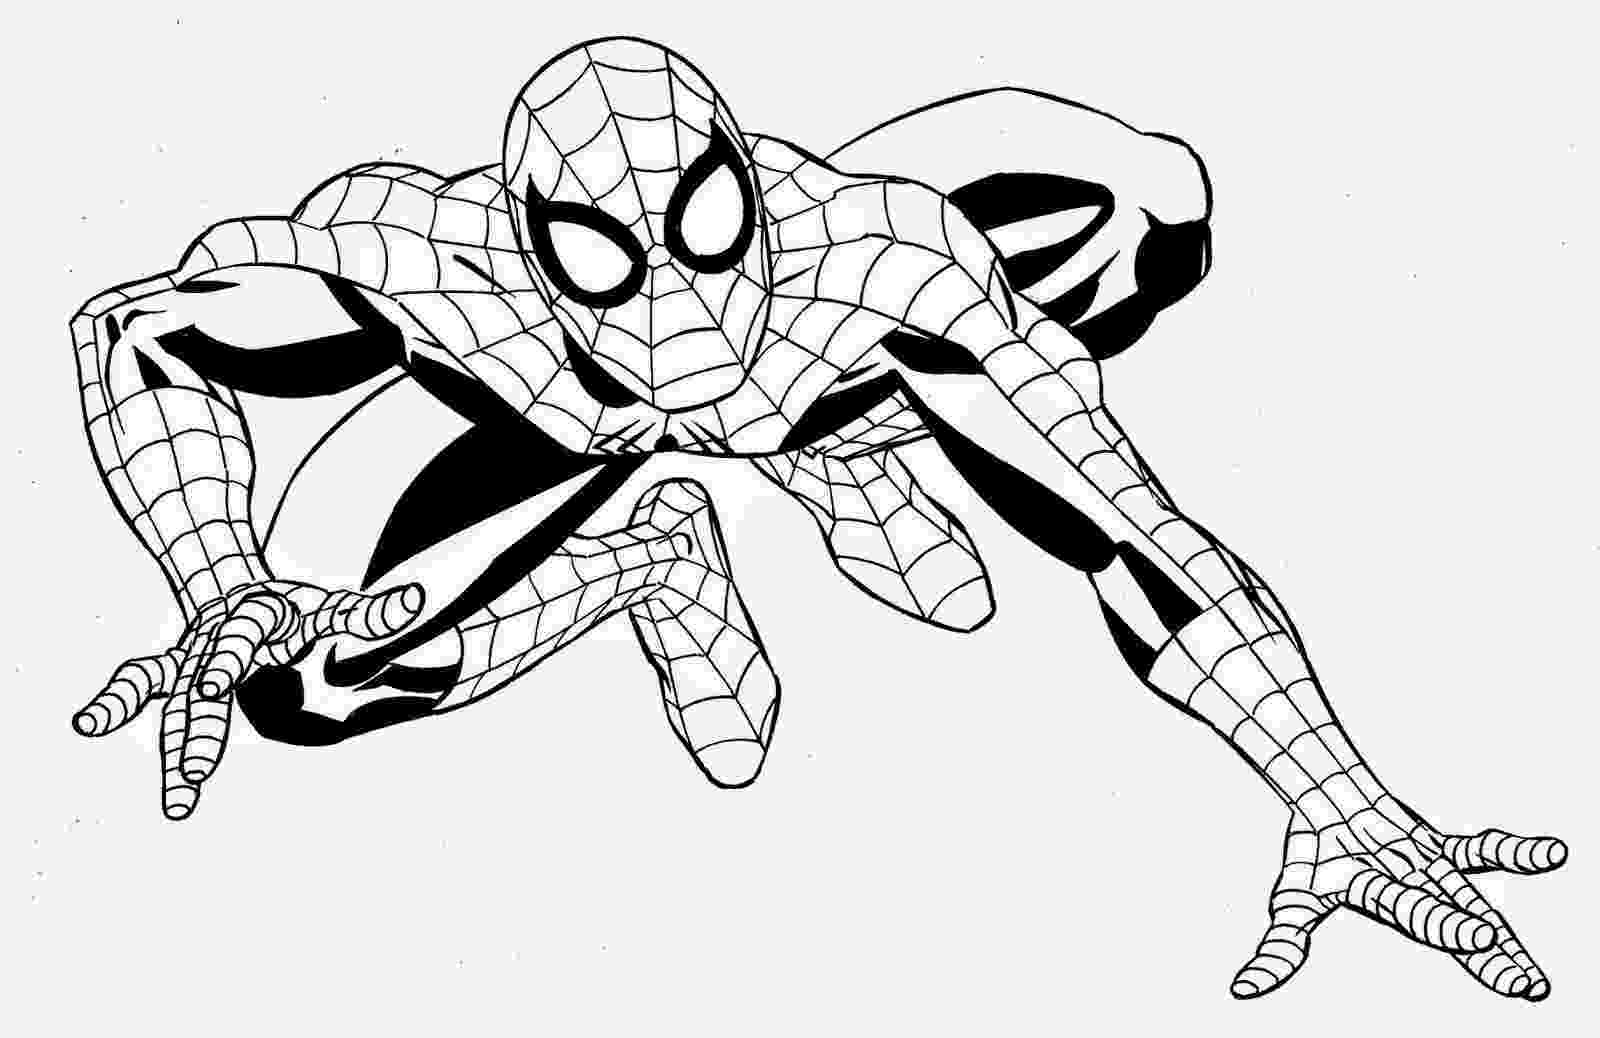 superhero color pages printable free printable superhero coloring sheets for kids crazy color pages superhero printable